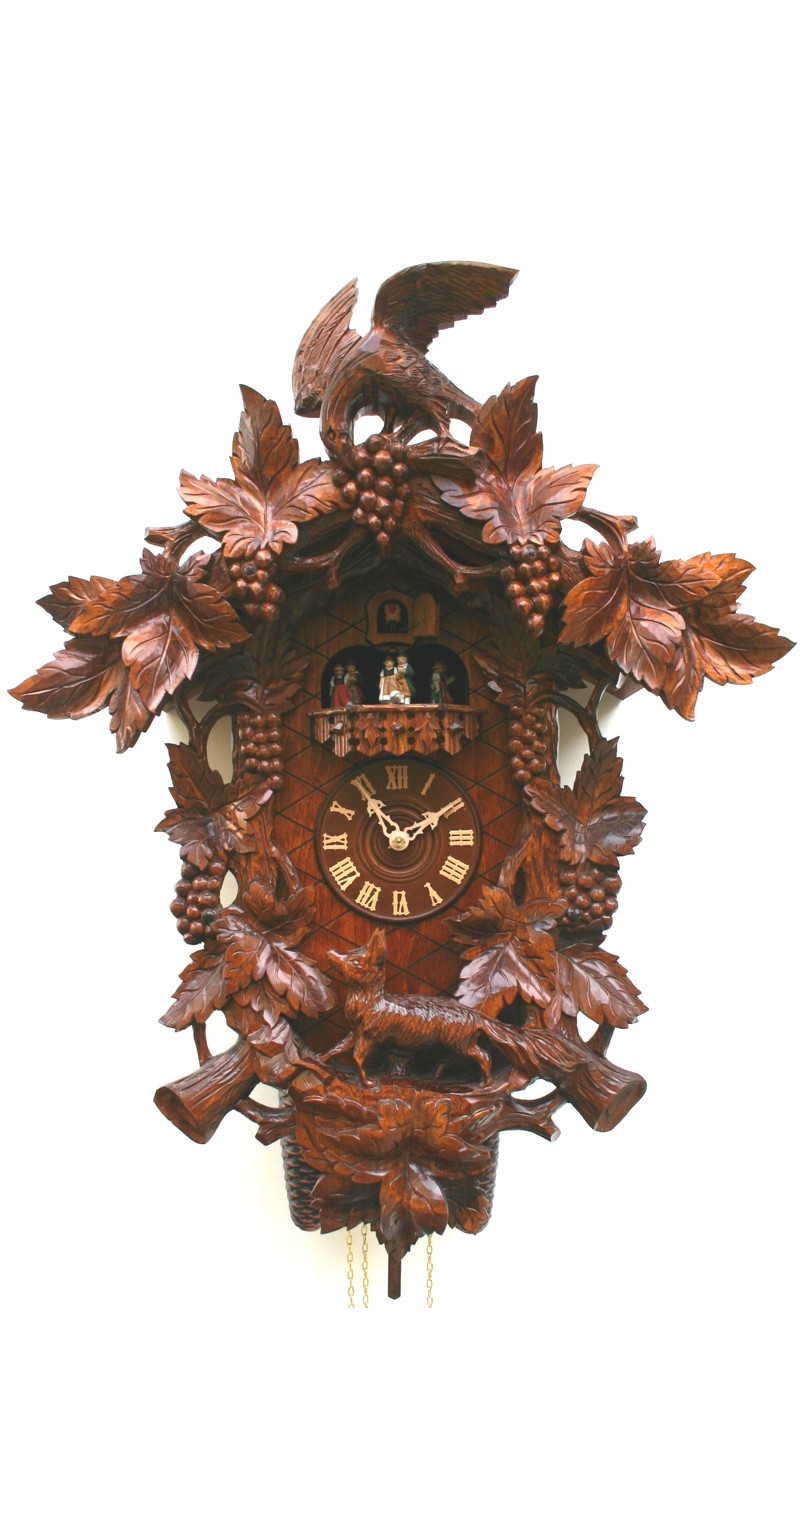 Cuckoo Clock with Fox, Raven and Grapes 8-Day Movement Music - Cuckoo Clock Meister